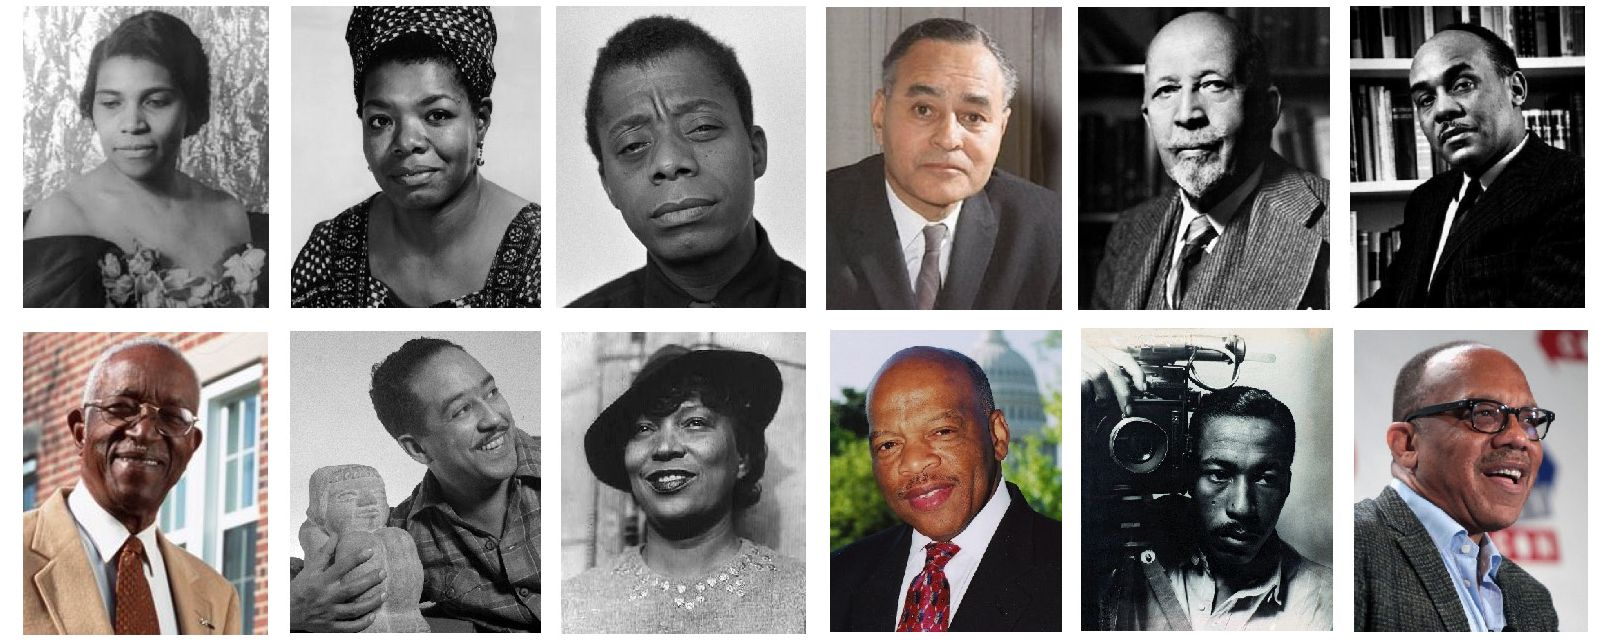 Rosenwald schools and fellowships helped educate an extraordinary group of intellectuals and artists including (top row) singer Marian Anderson, poet Maya Aangelou, novelist James Bbaldwin, diplomat Ralph Bunche, Dubois, Ralph Ellison and (bottom row), scholar John Hope Franklin, poet Langston Hughes, Zora Neale Hurston, John L. Lewis, photographer Gordon Parks, and Pulitzer Prize winning journalist Eugene Robinson.